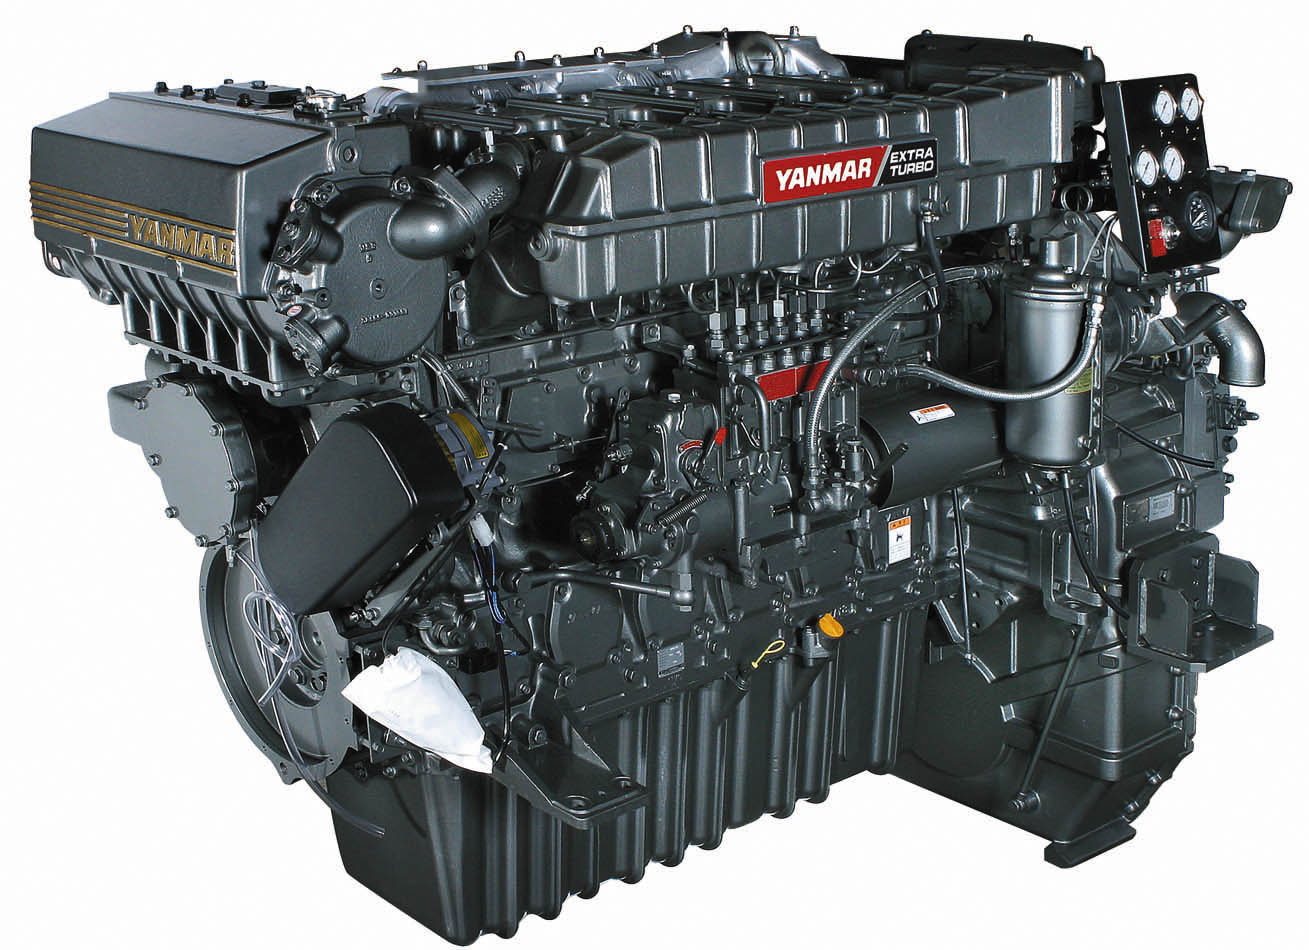 Yanmar Commercial Marine Valley Power Systems